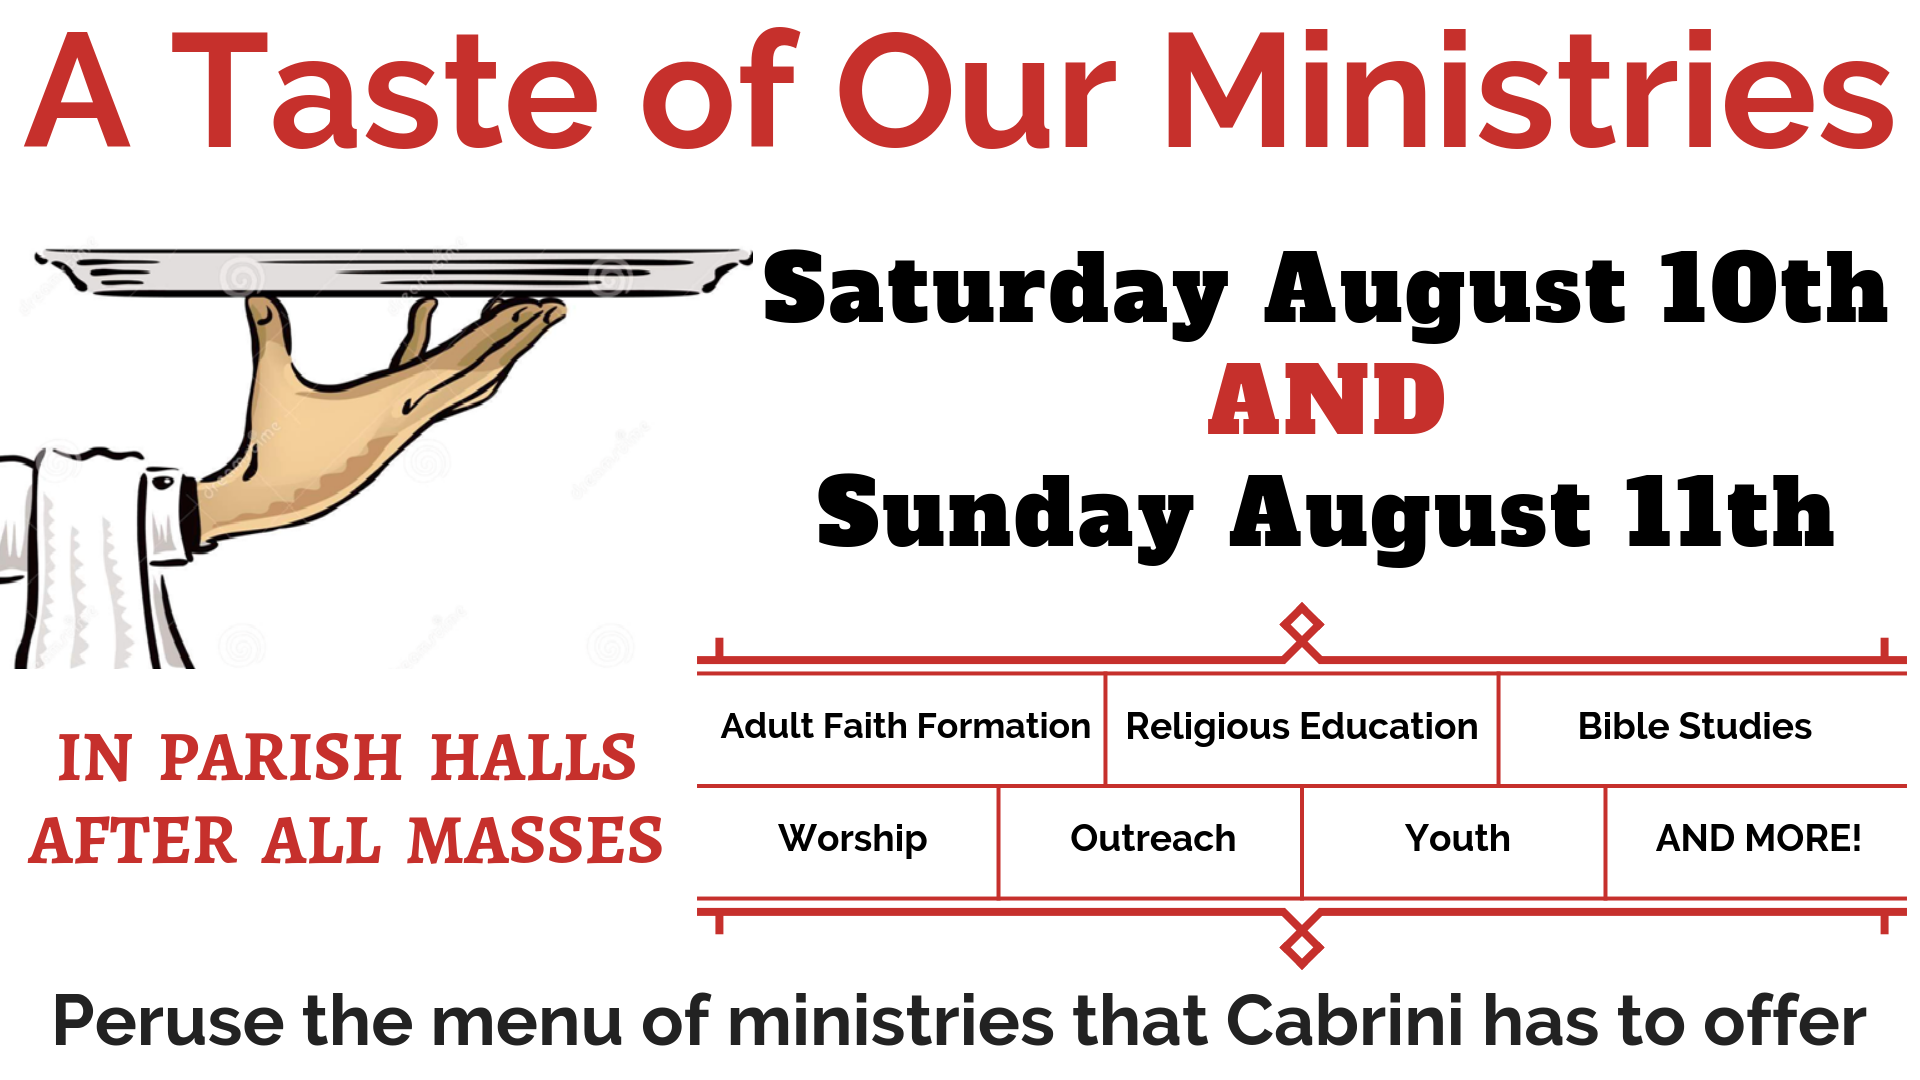 Copy of A Taste of Our Ministries ANNOUNCEMENTS.png